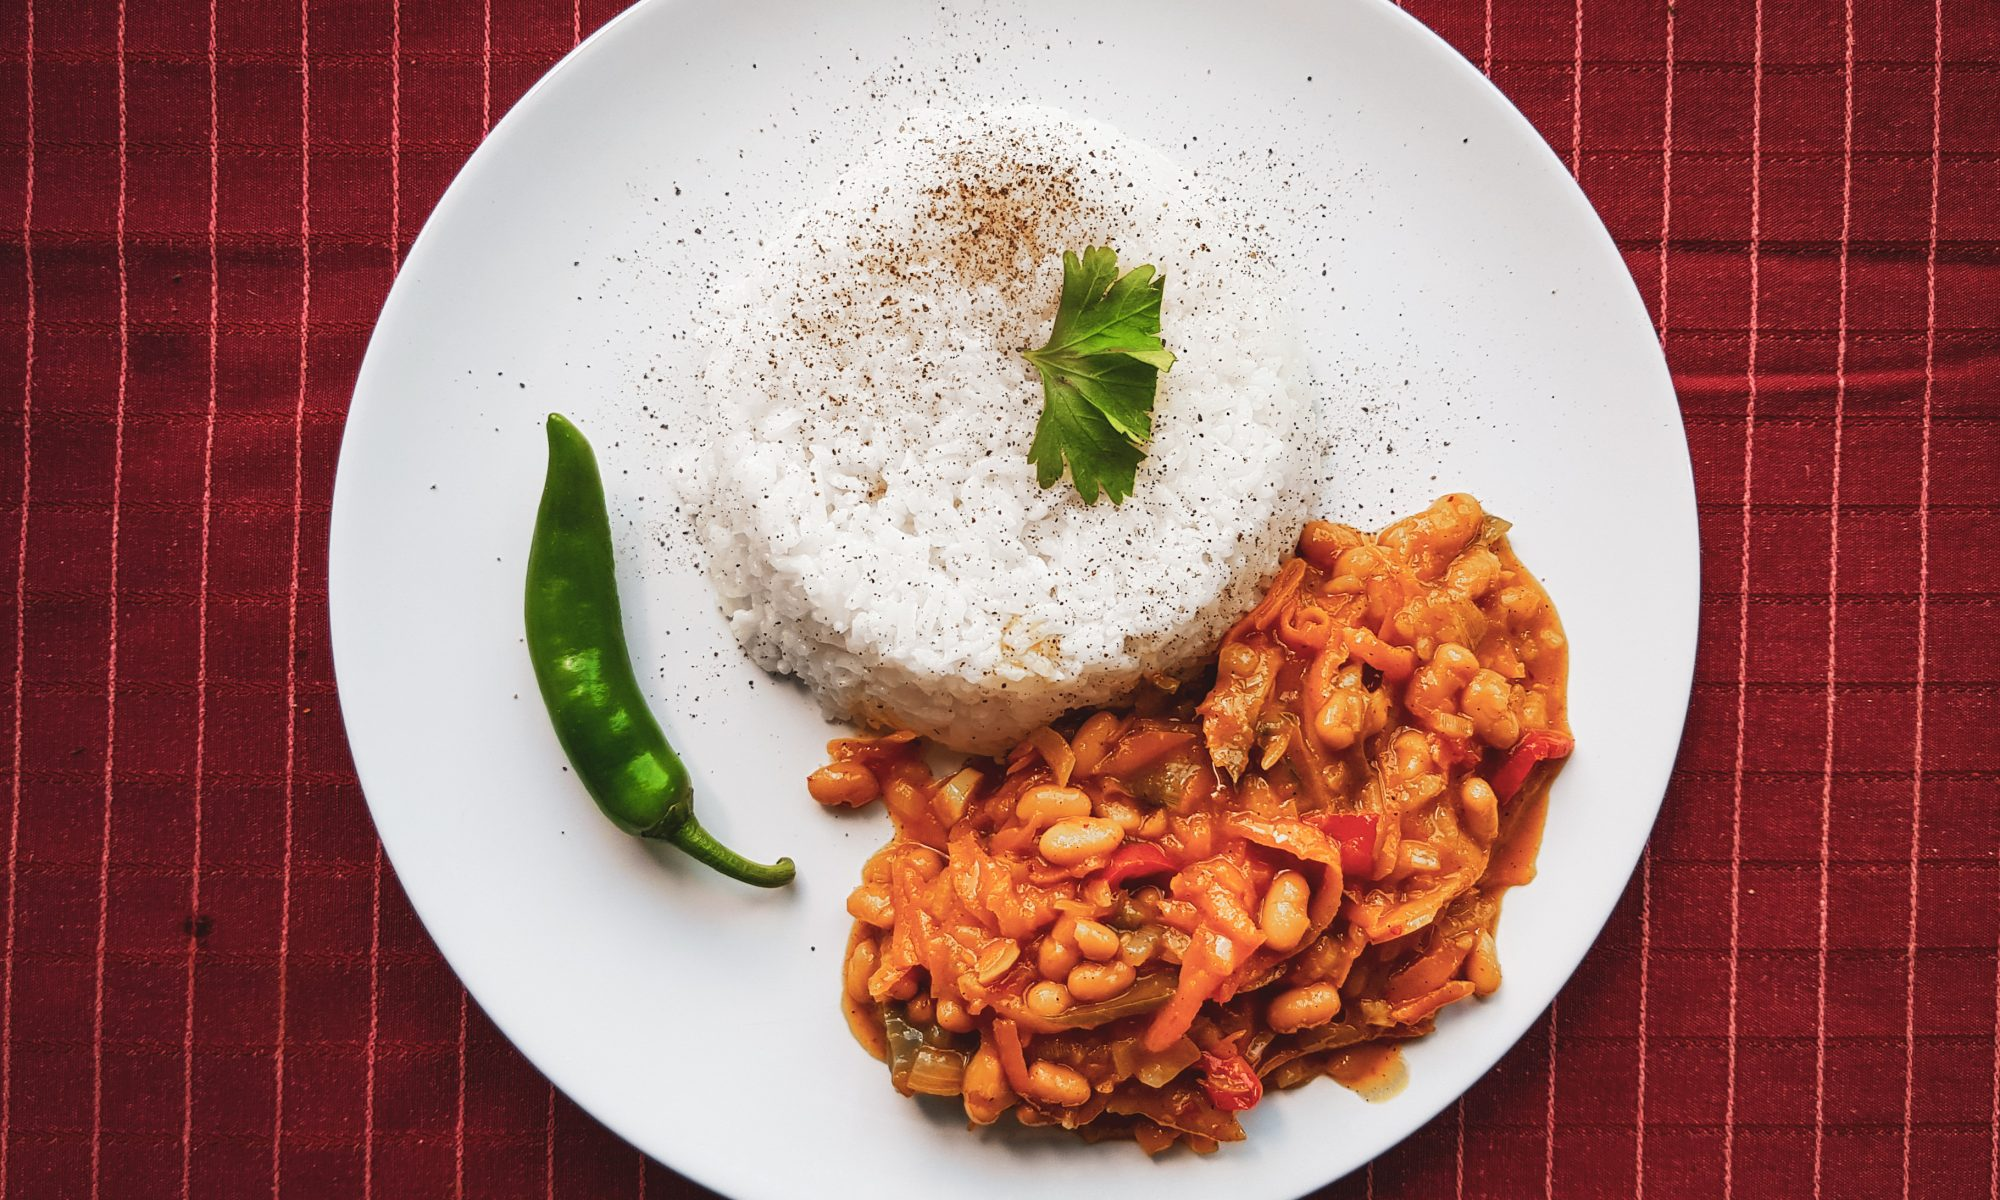 South African Food - Chakalaka and Rice